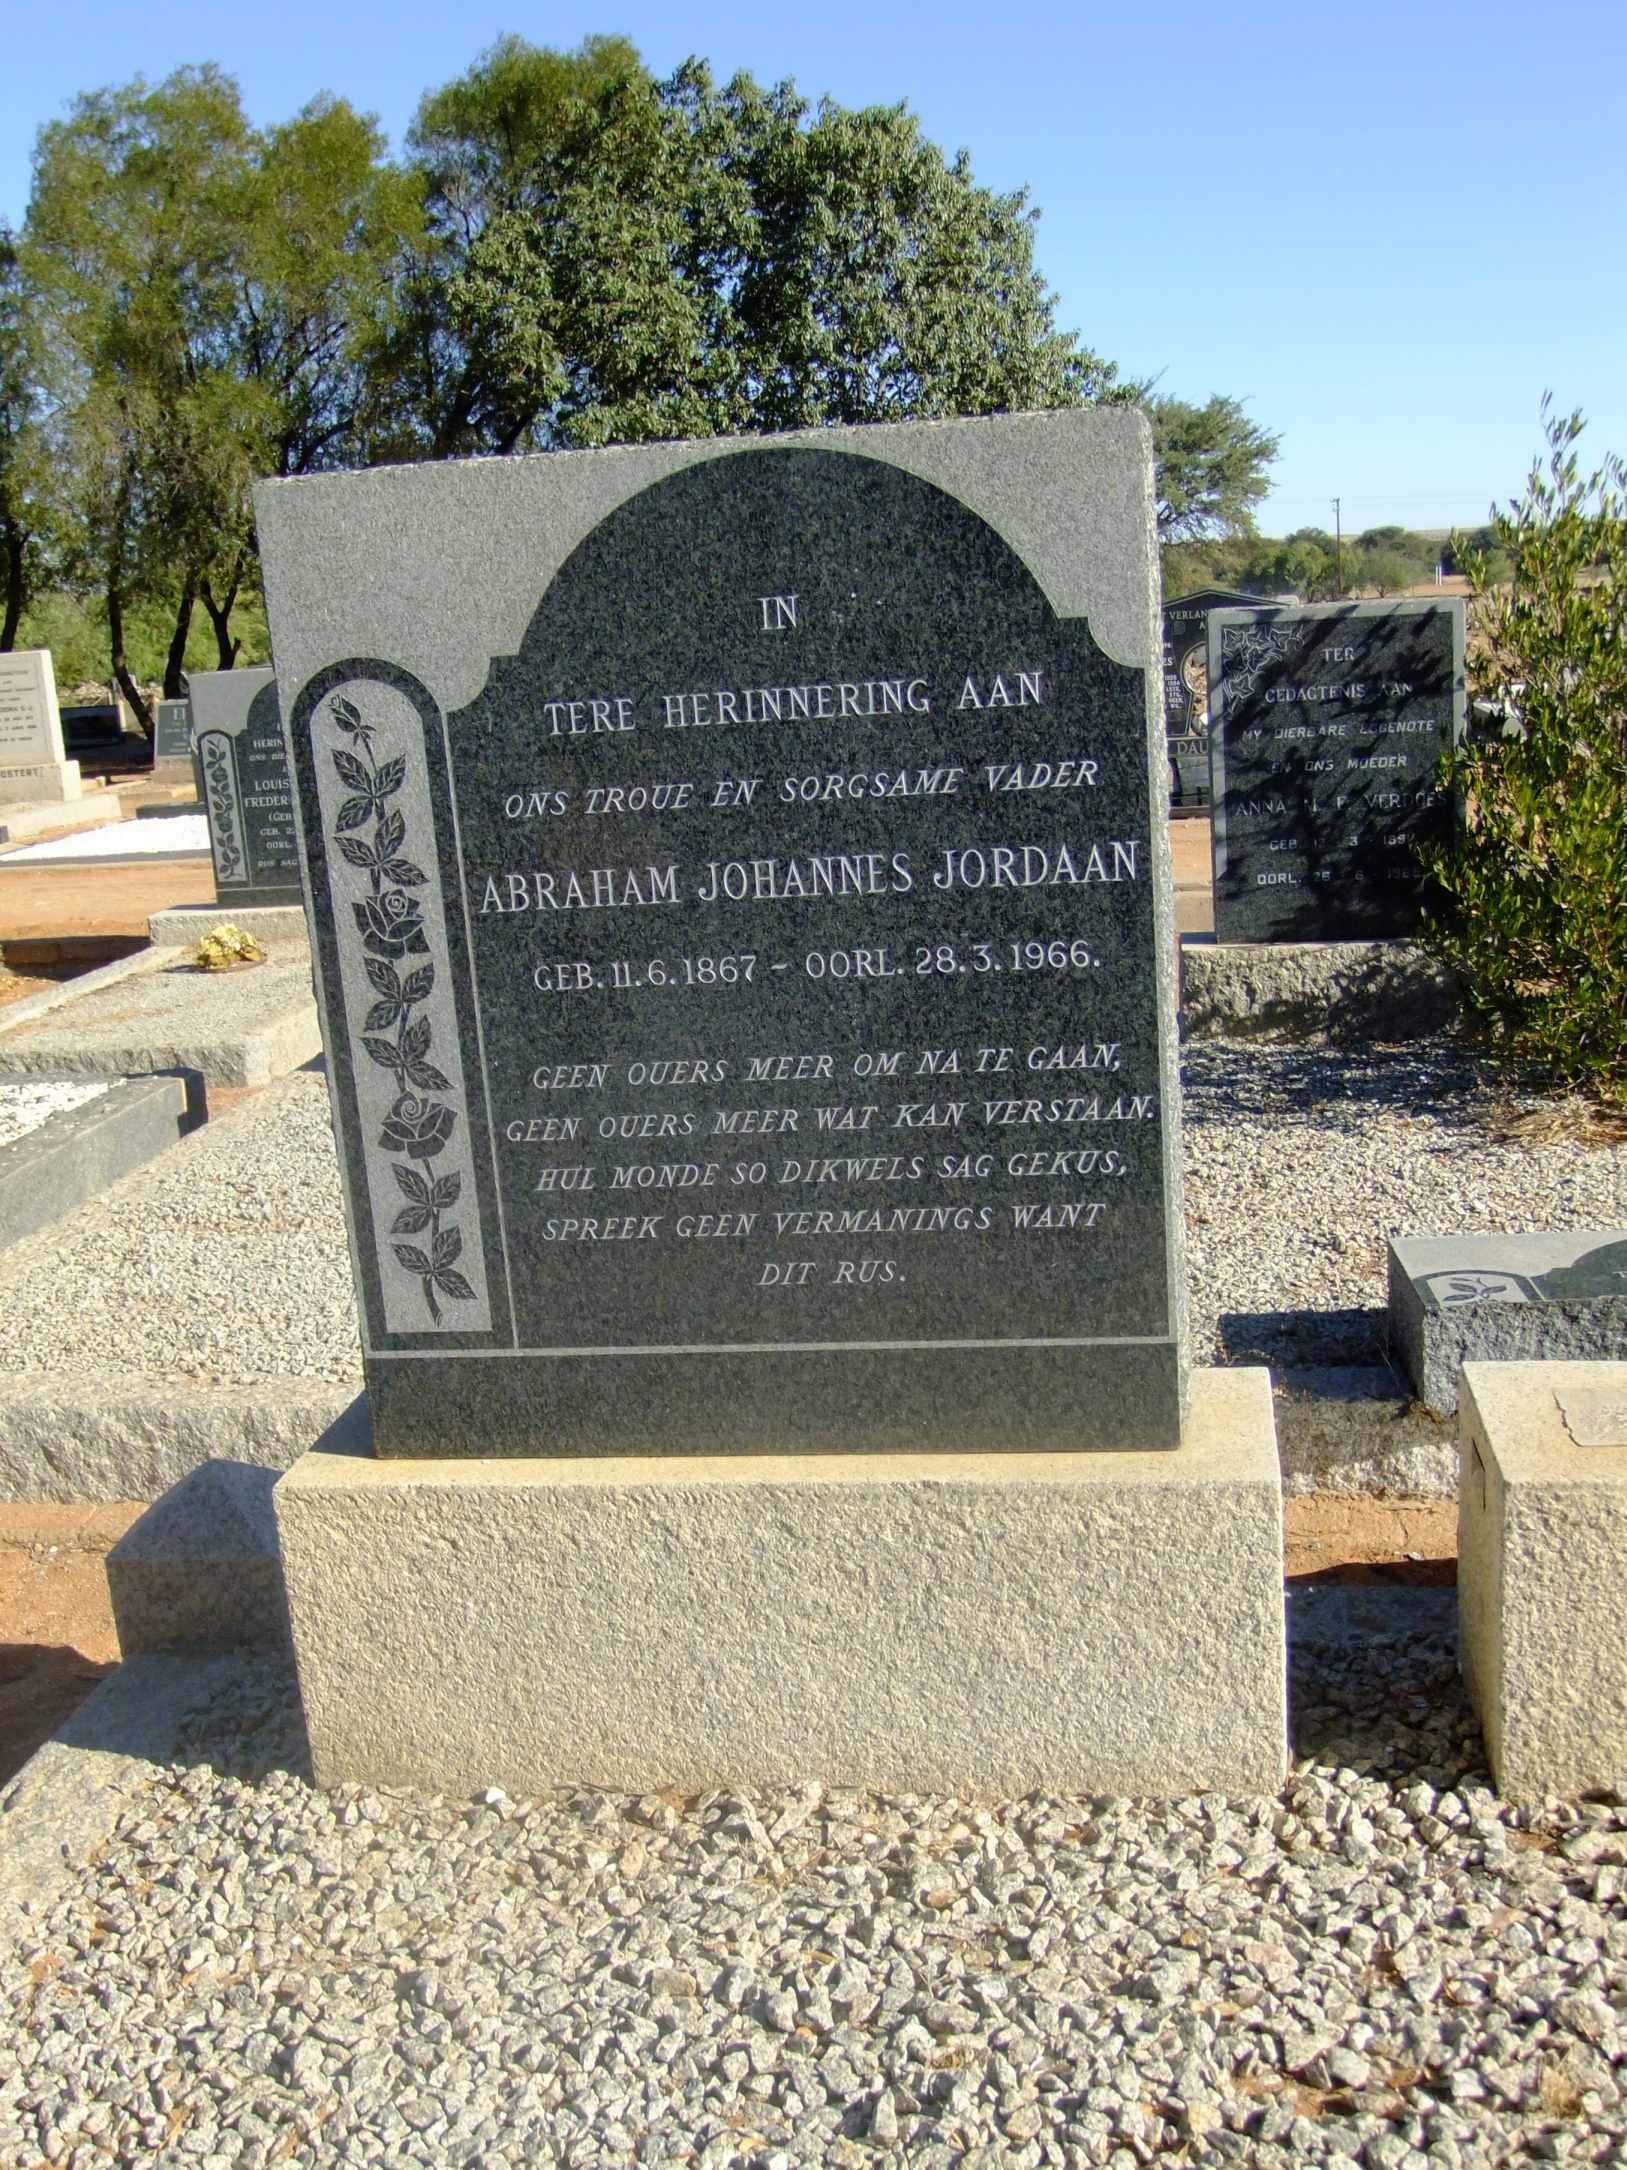 Jordaan, Abraham Johannes born 11 June 1867 died 28 March 1966